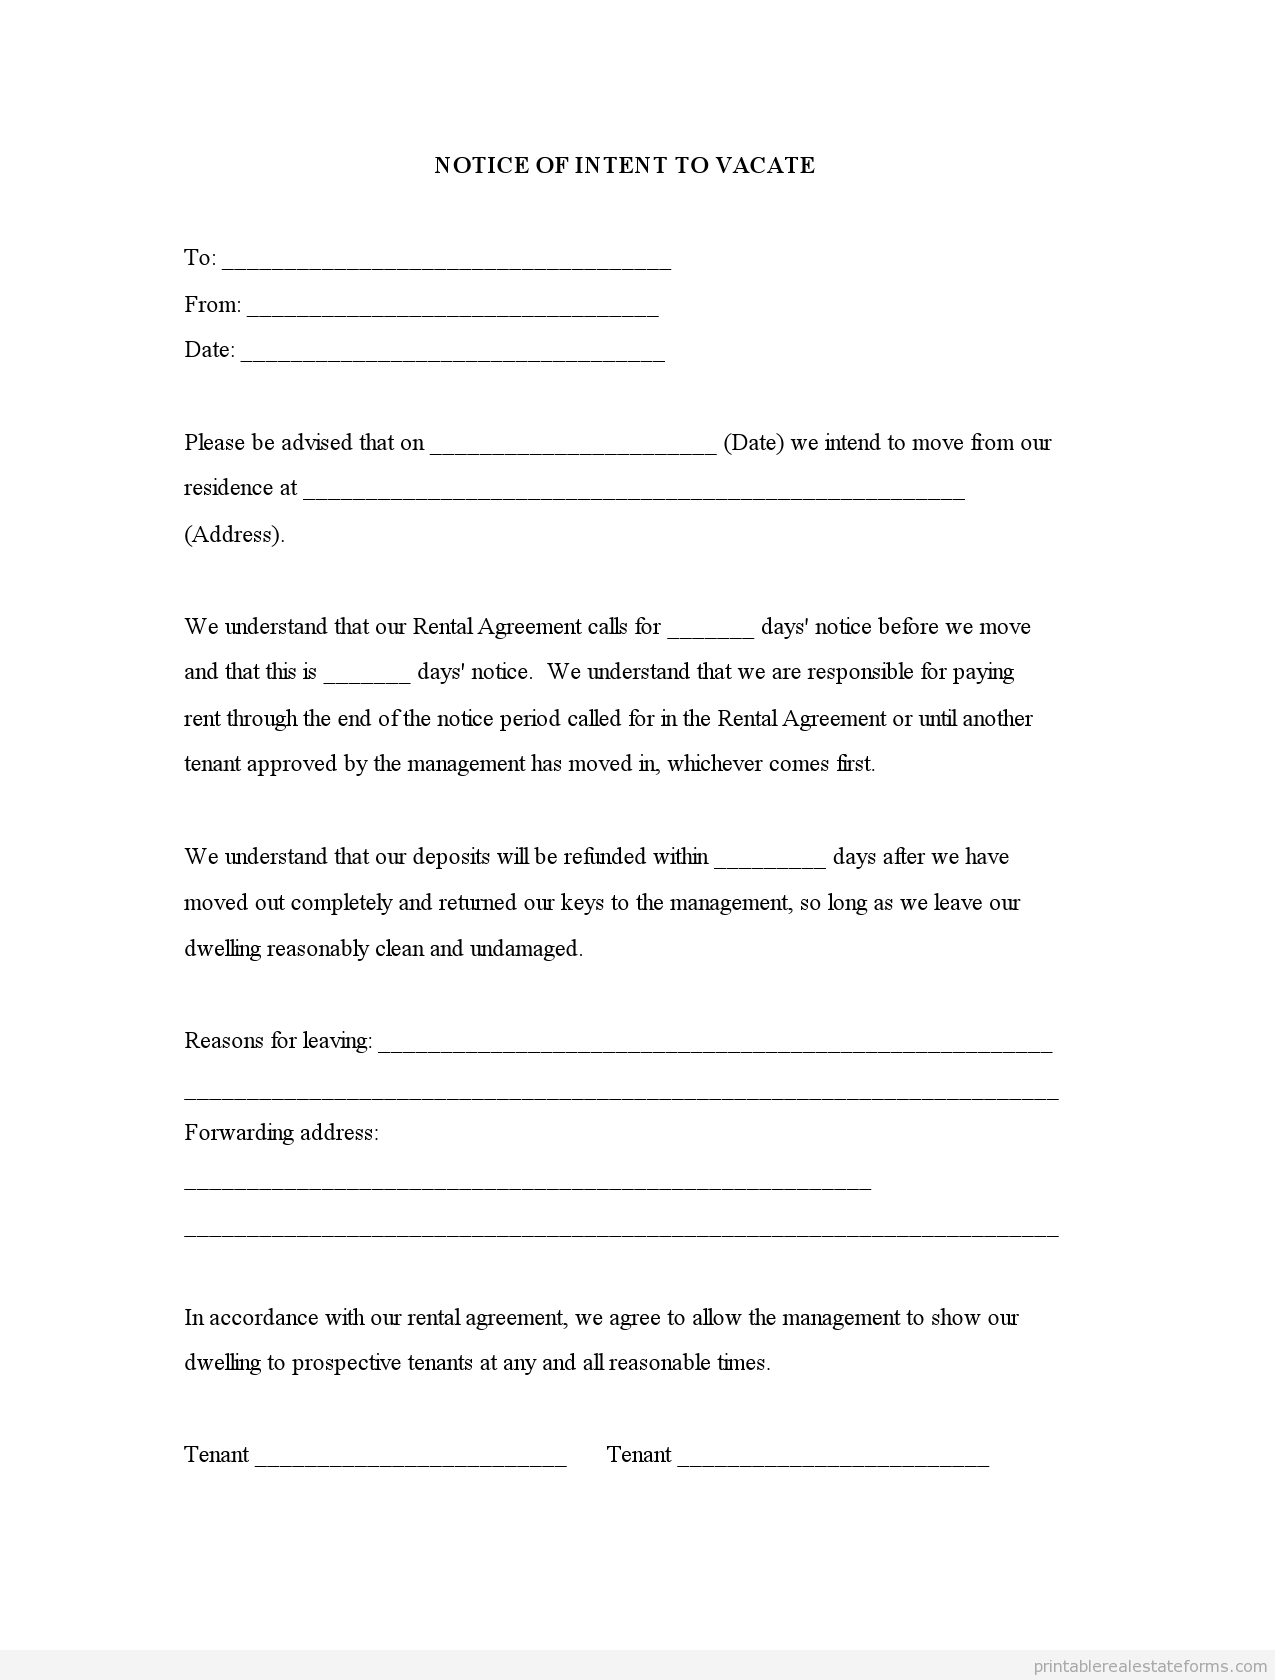 Intent to Vacate Letter Template - 20 Beautiful Letter Template Vacating Property Pics